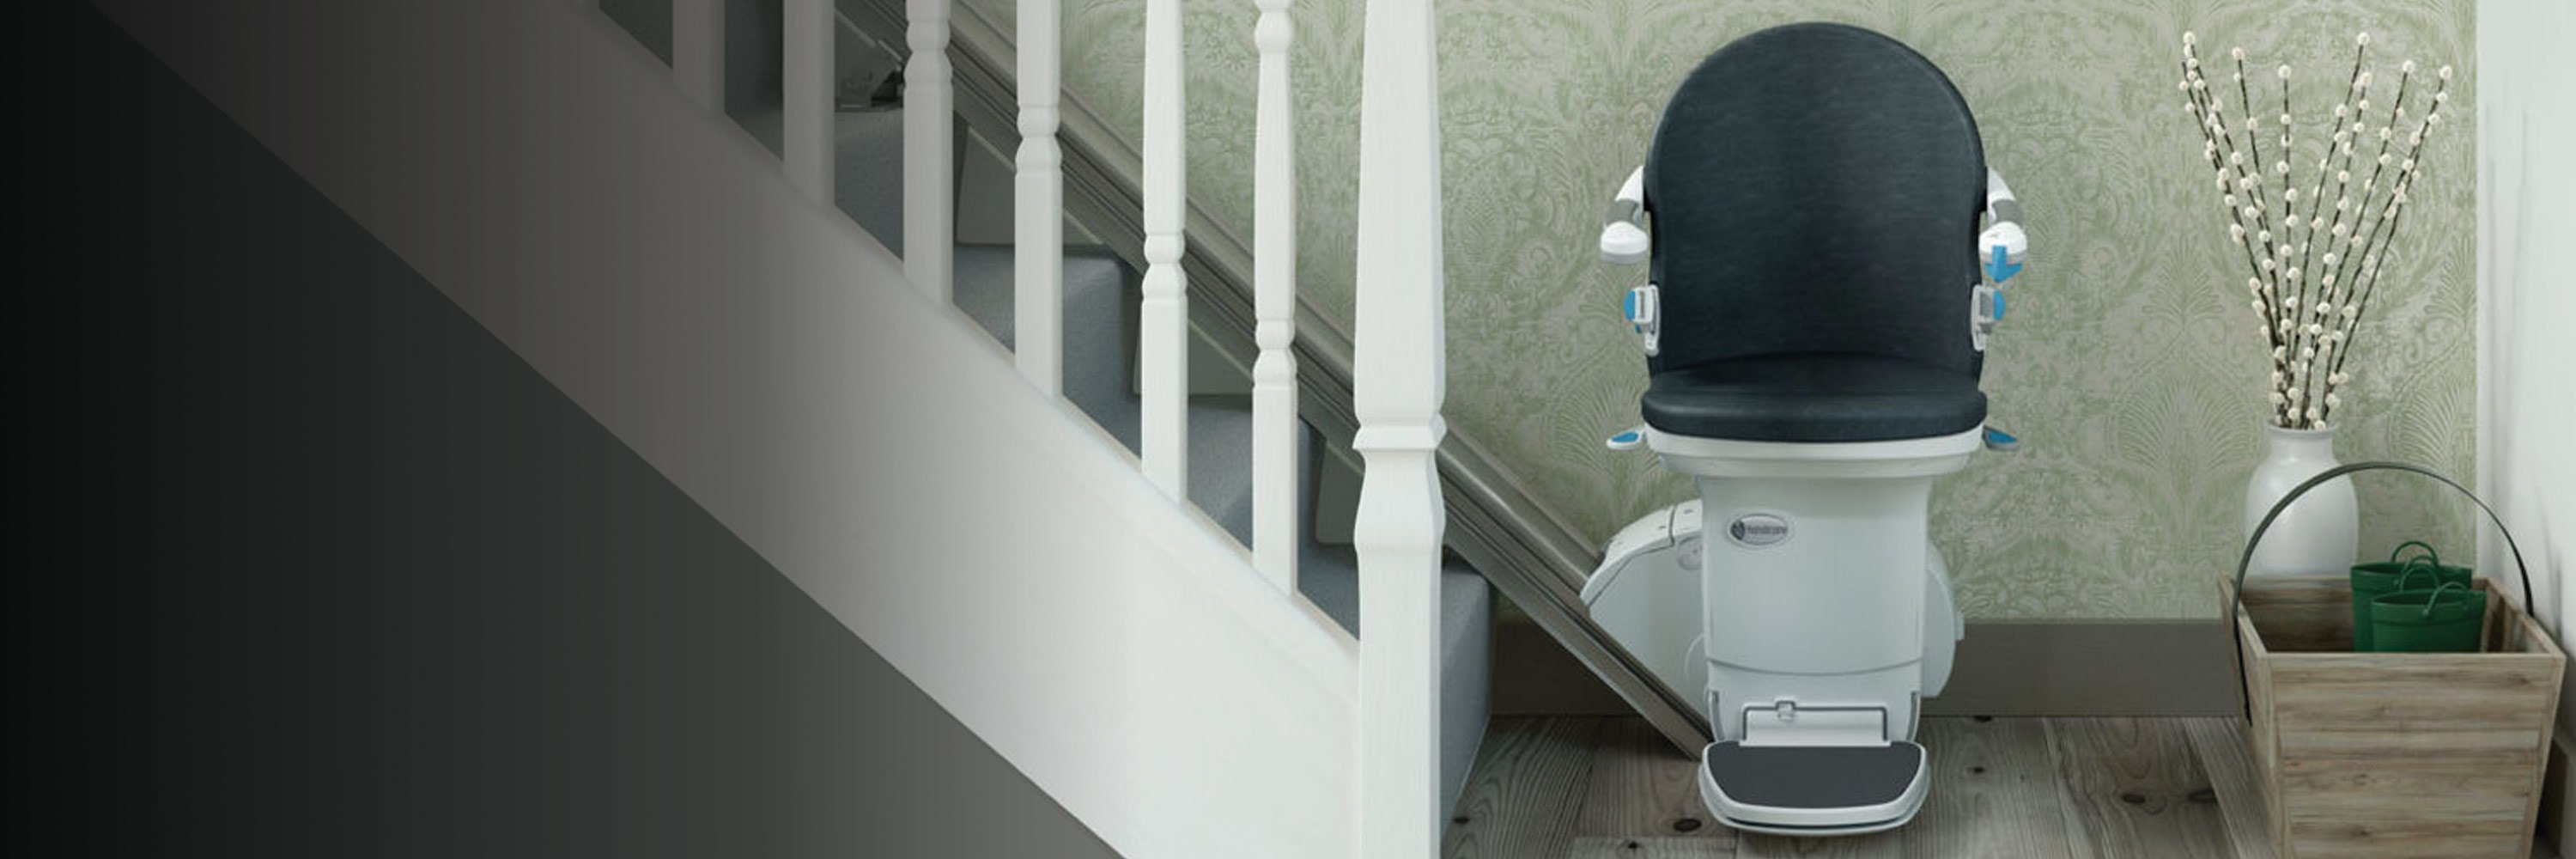 Electric Stairlifts for homes - tailored stairlifts by Shropshire Mobility Solutions